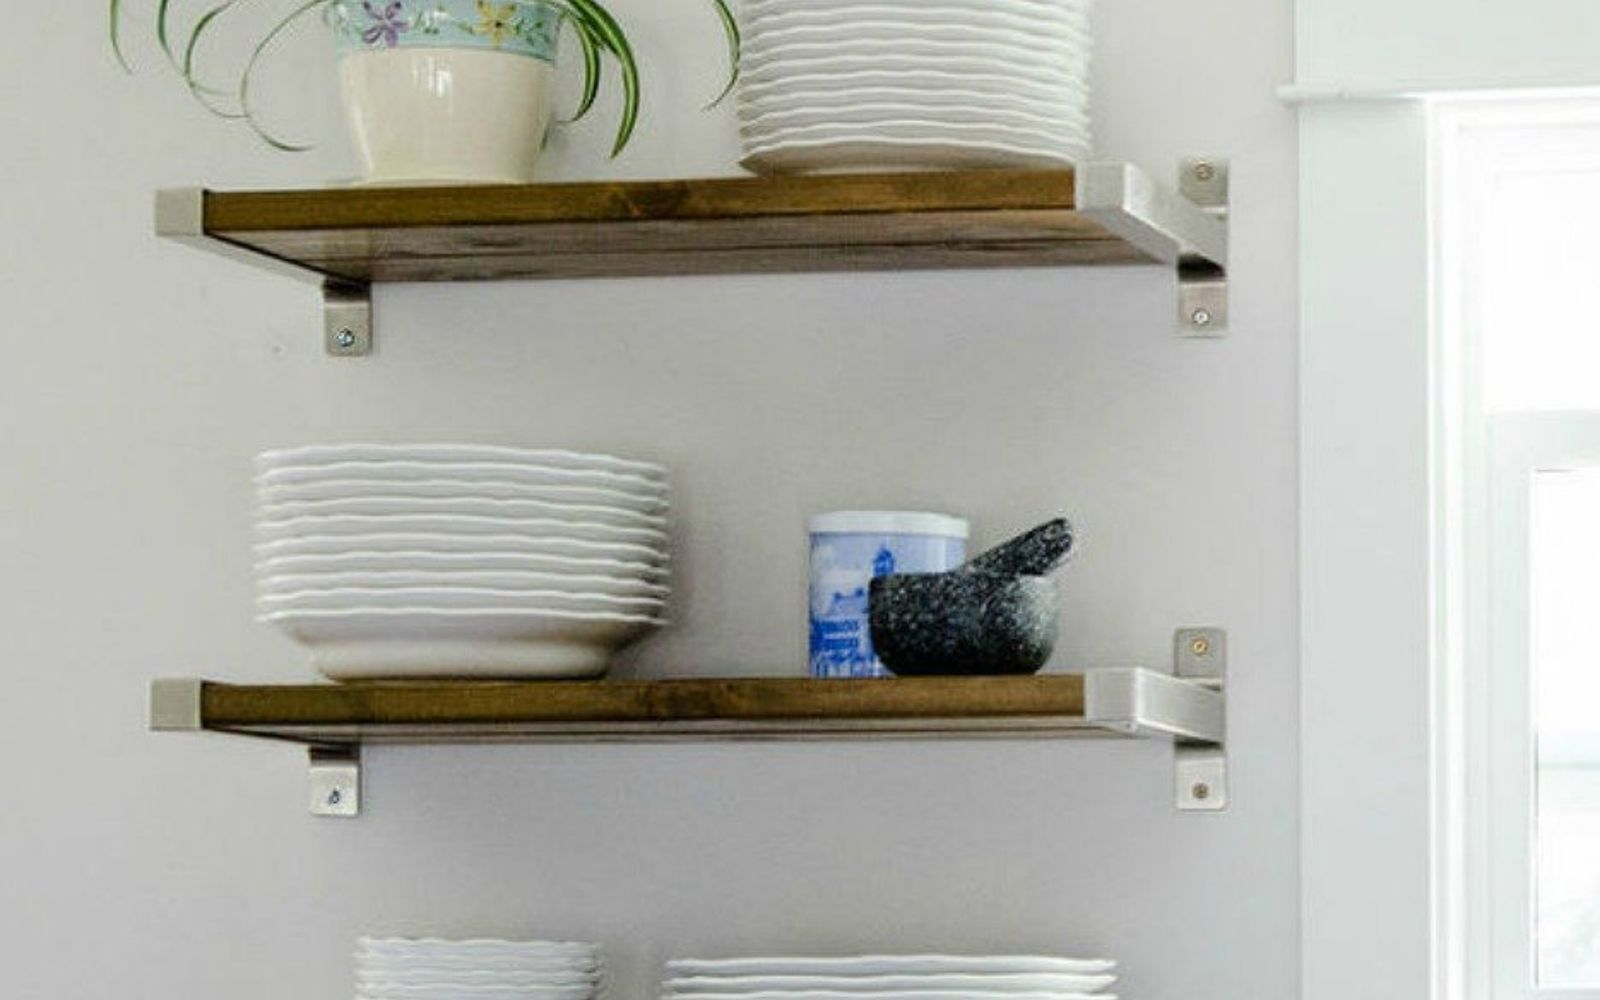 Design For Kitchen Shelves: 15 Clever Ways To Add More Kitchen Storage Space With Open